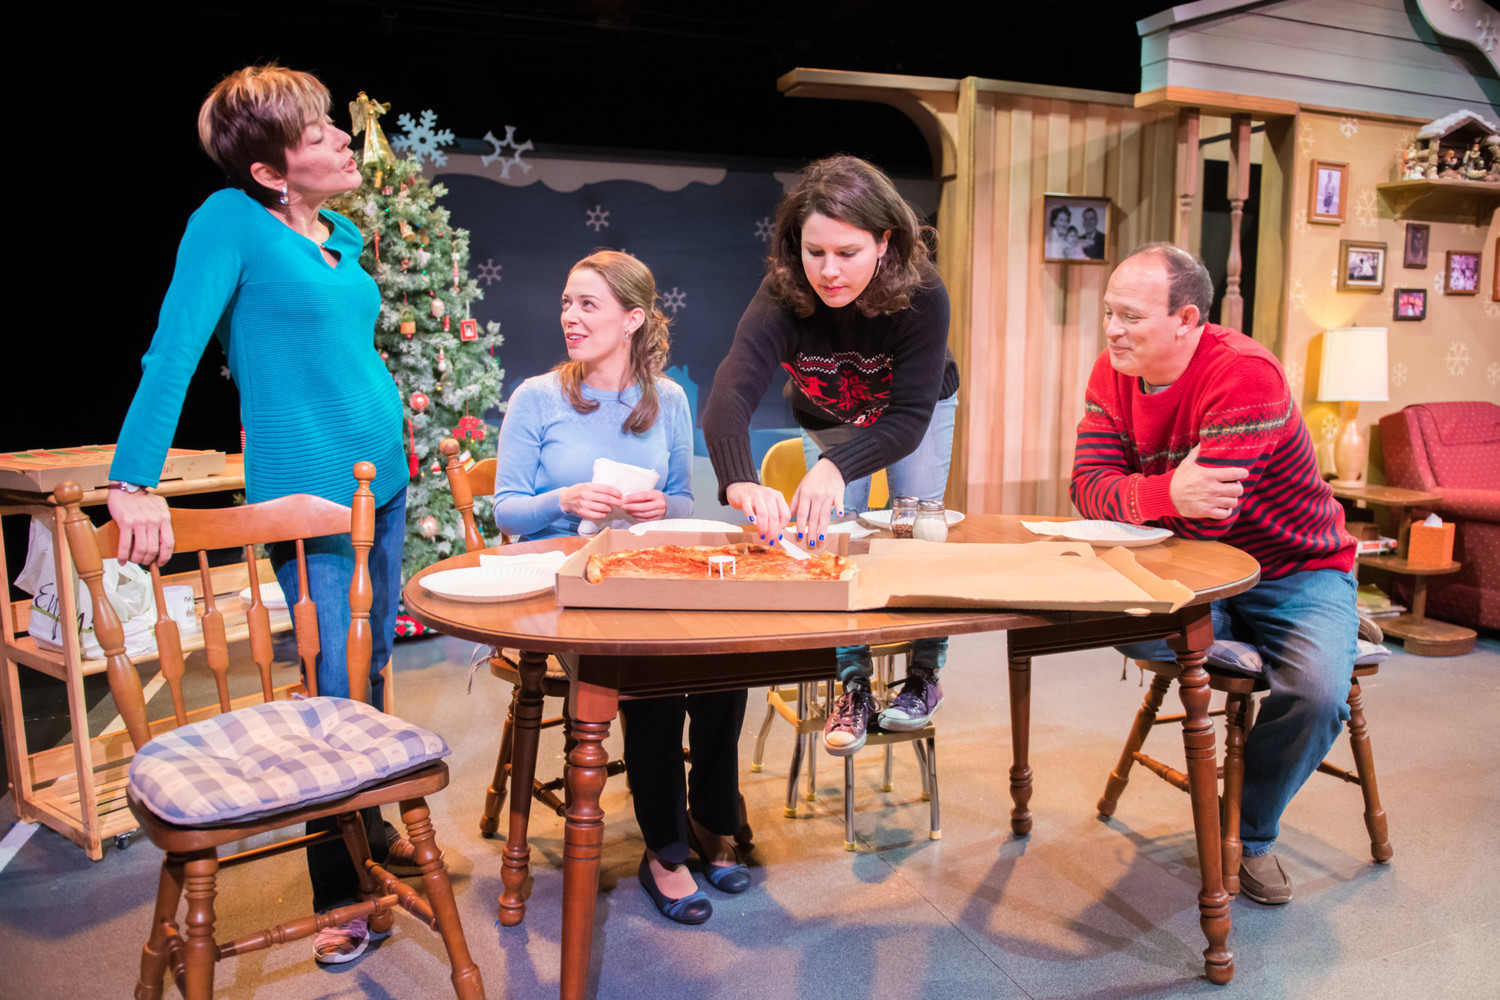 BWW Review: CHRISTMAS IN BABYLON Unpacks Family Dynamics With Comedy At The Milwaukee Chamber Theatre